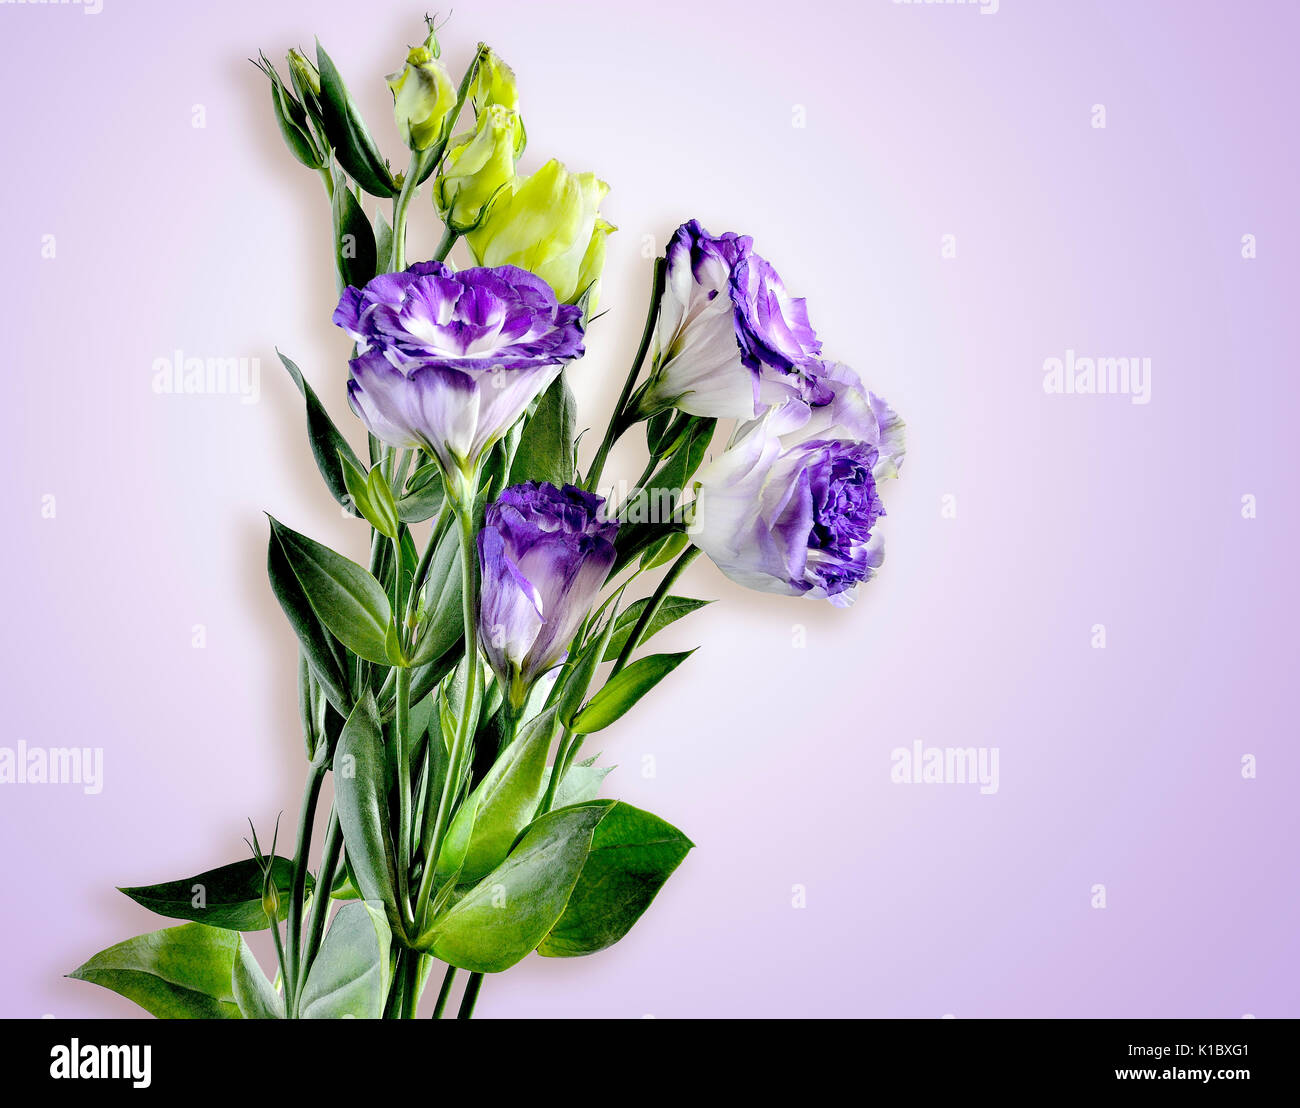 Lisianthus flowers floral blooms stock photos lisianthus flowers bouquet of purple with white eustoma lisianthus flowers on a tender lilac background altavistaventures Choice Image